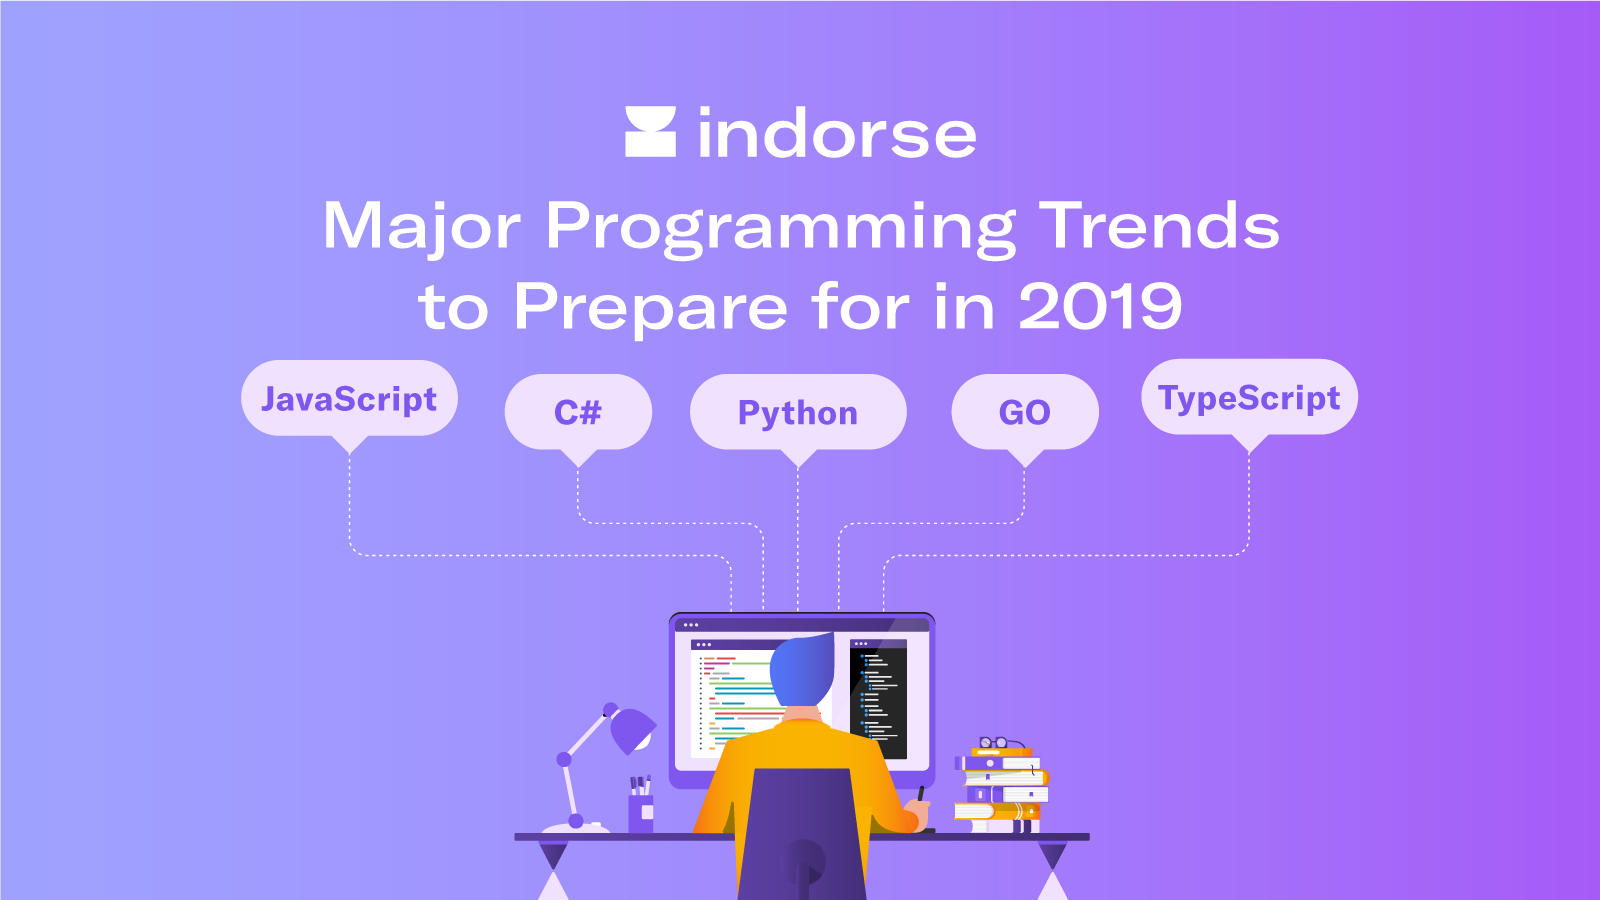 /major-programming-trends-to-prepare-for-in-2019-169987cc75f4 feature image